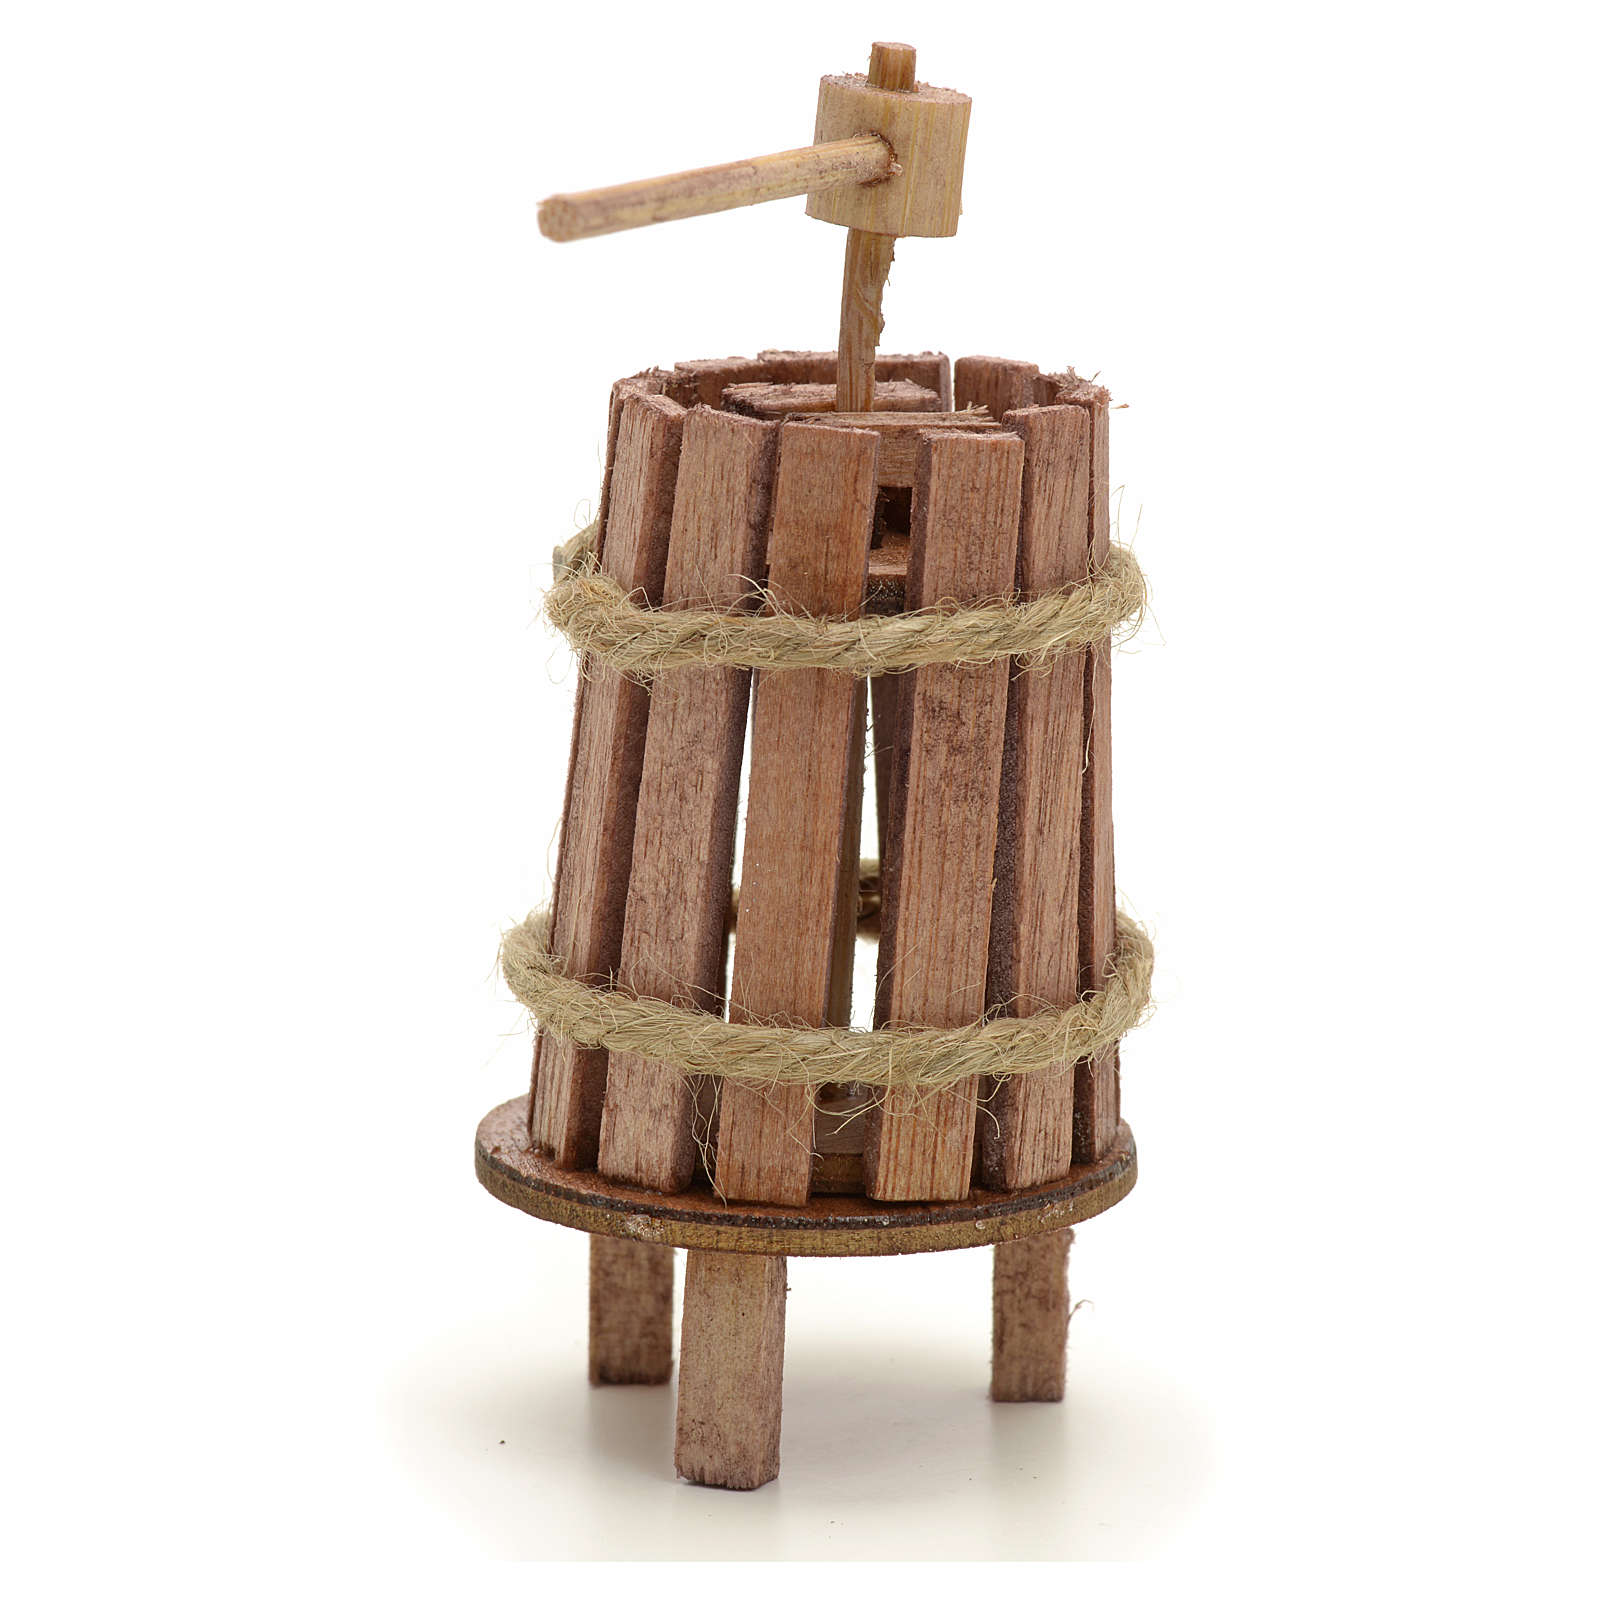 Nativity accessory, wooden press for do-it-yourself nativities, 4